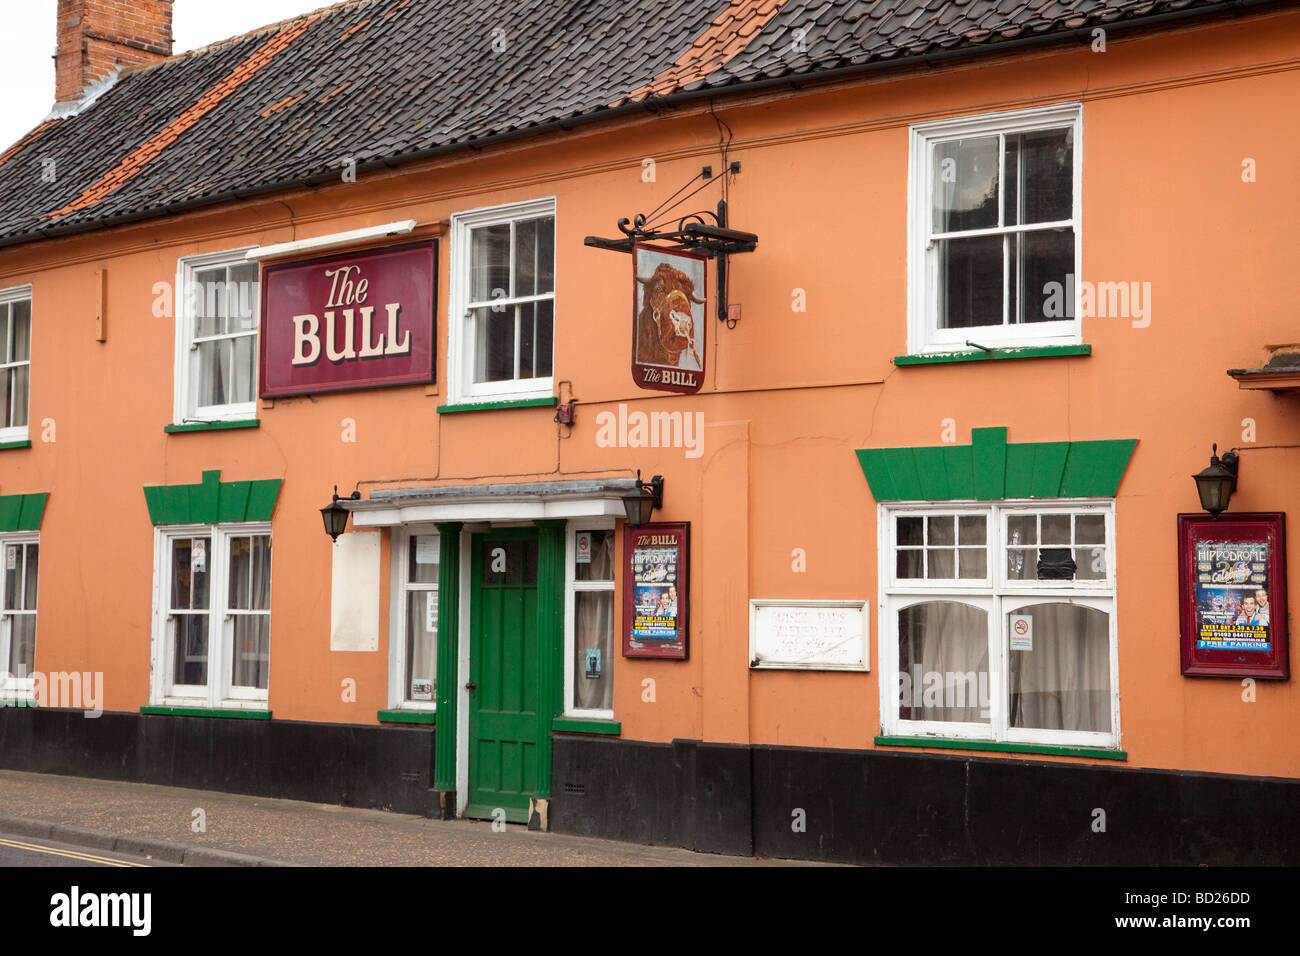 The Bull pub in Watton, Norfolk, UK - Stock Image